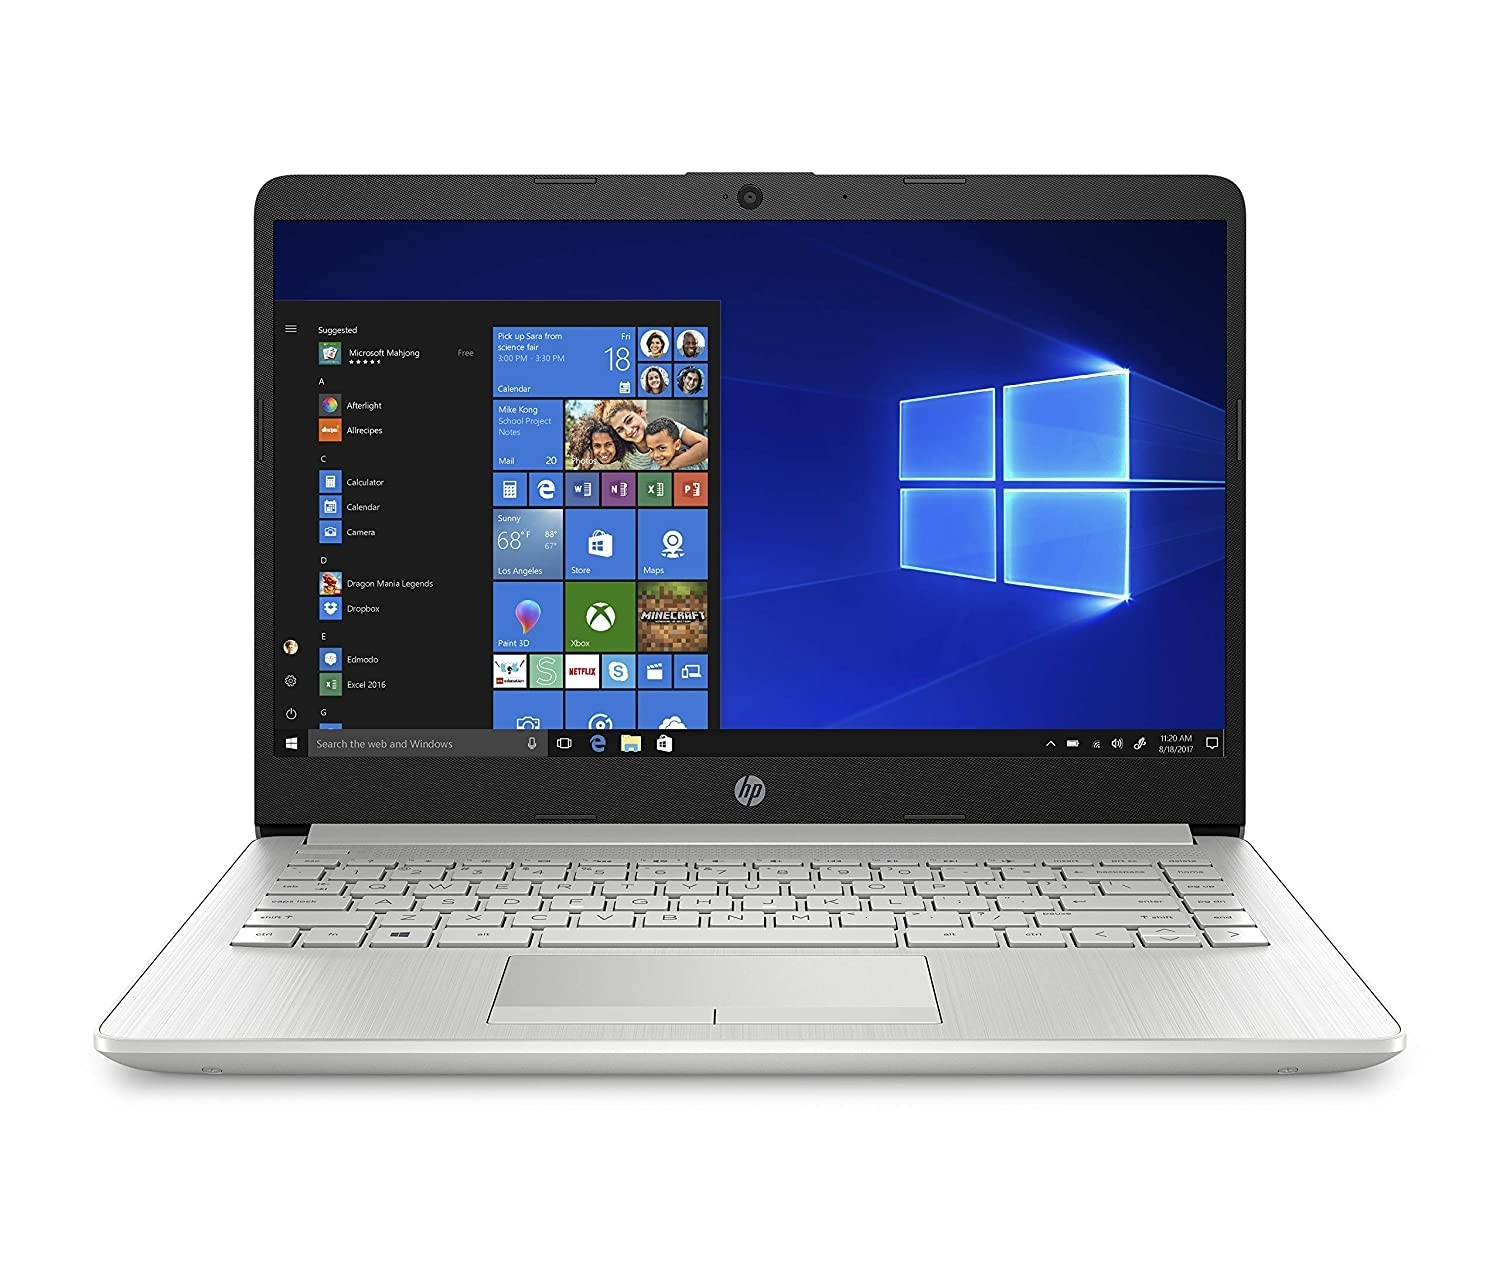 Refurbished laptops & desktops - HP 14 Laptop (Ryzen 5 3500U/8GB/1TB HDD + 256GB SSD/Win 10/Radeon Vega 8 Graphics), DK0093AU